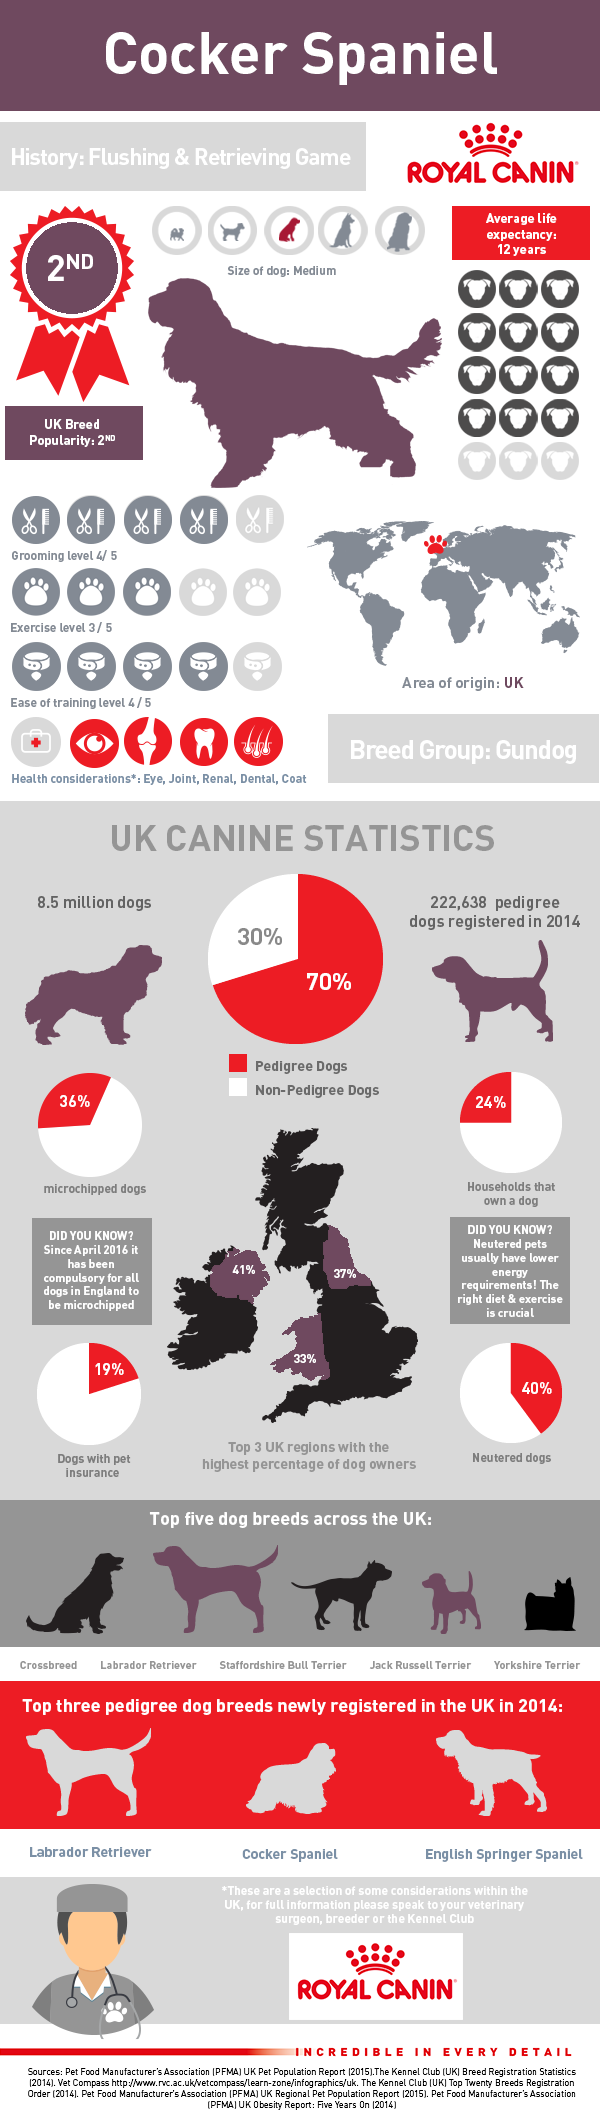 infographic-cocker-spaniel